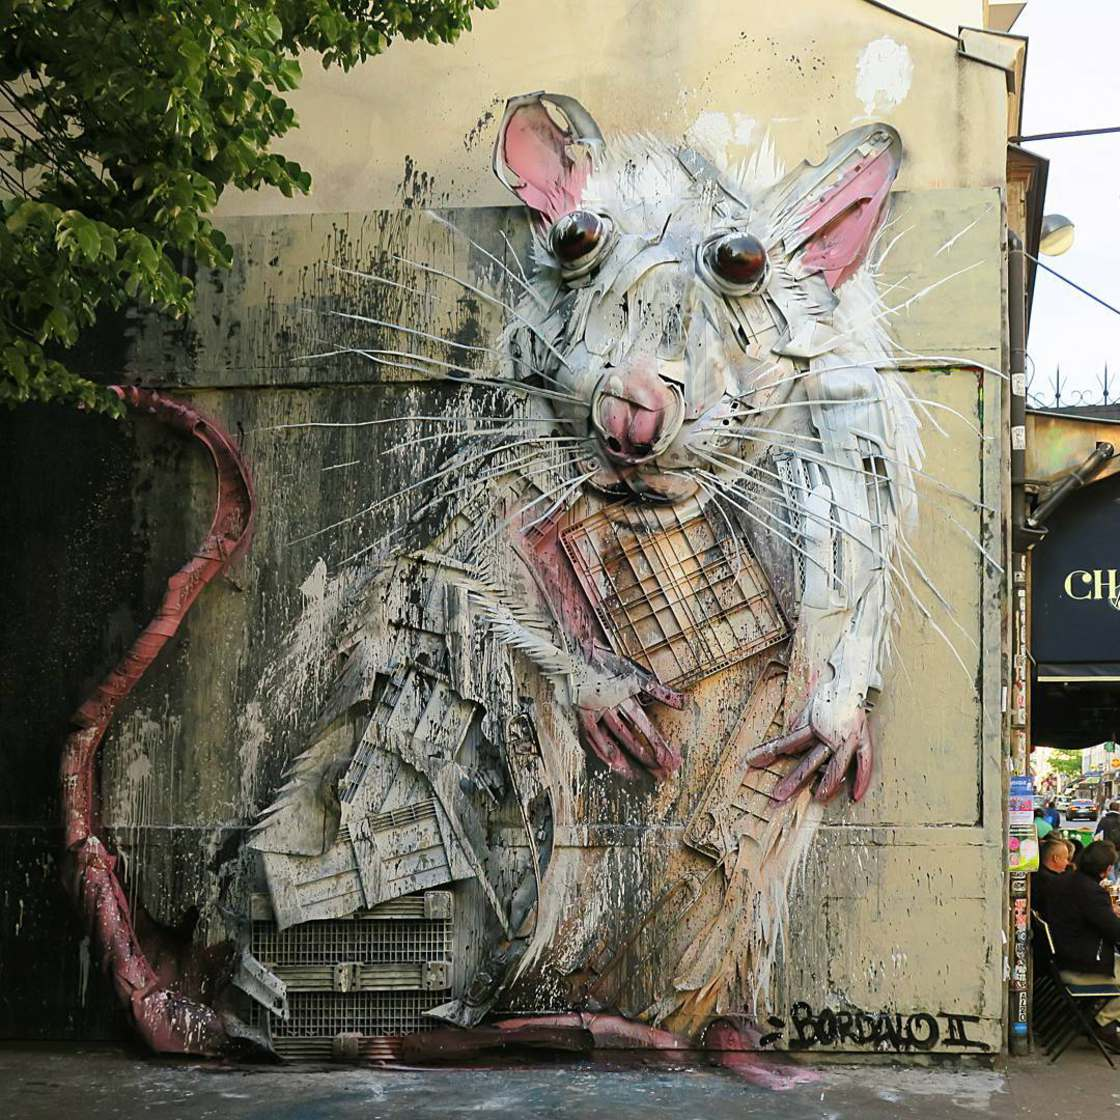 Bordalo II Street Art Ordures Art